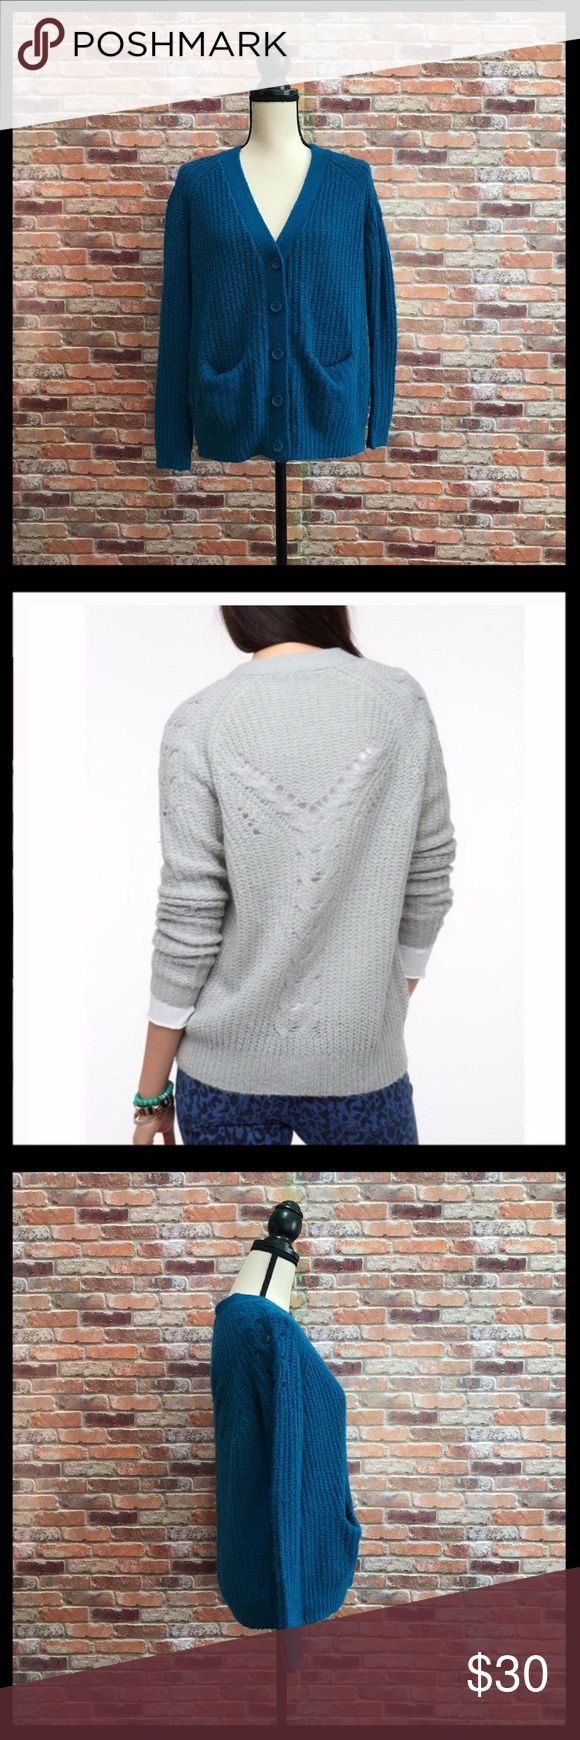 """Urban Outfitters Kimchi Blue Back Stitch Cardigan Urban Outfitters Kimchi Blue Backstitch Cardigan in a size small.  Has a deep v neck with five buttons down the front.  Back and shoulders have a cutout open knit design.  Two front pockets. Soft fuzzy sweater.  Measures approximately 19"""" armpit to armpit, and 24""""in length.  70% acrylic, and 30% wool.  In excellent condition. Urban Outfitters Sweaters Cardigans"""